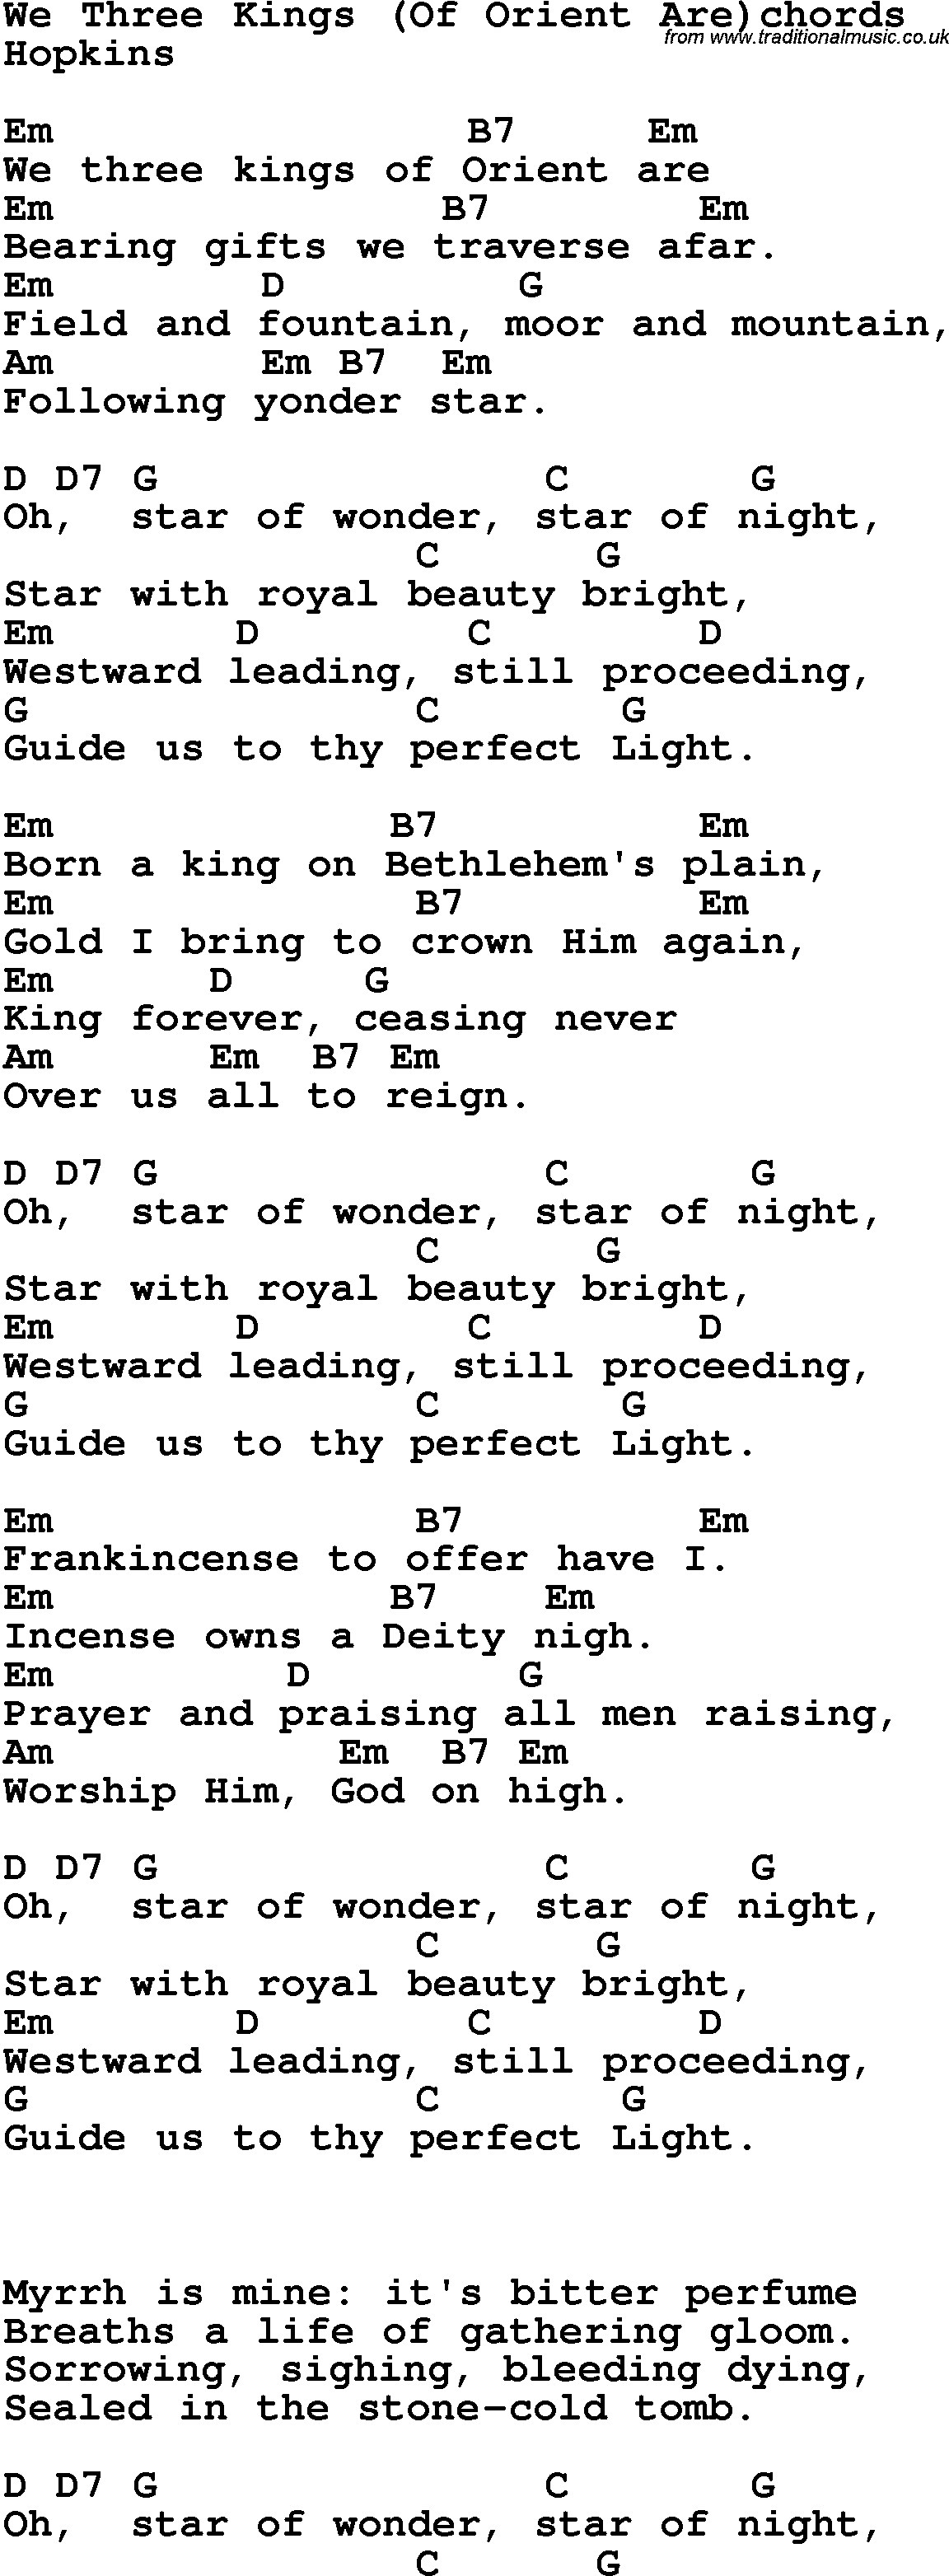 Pics Photos - We Three Kings Lyrics